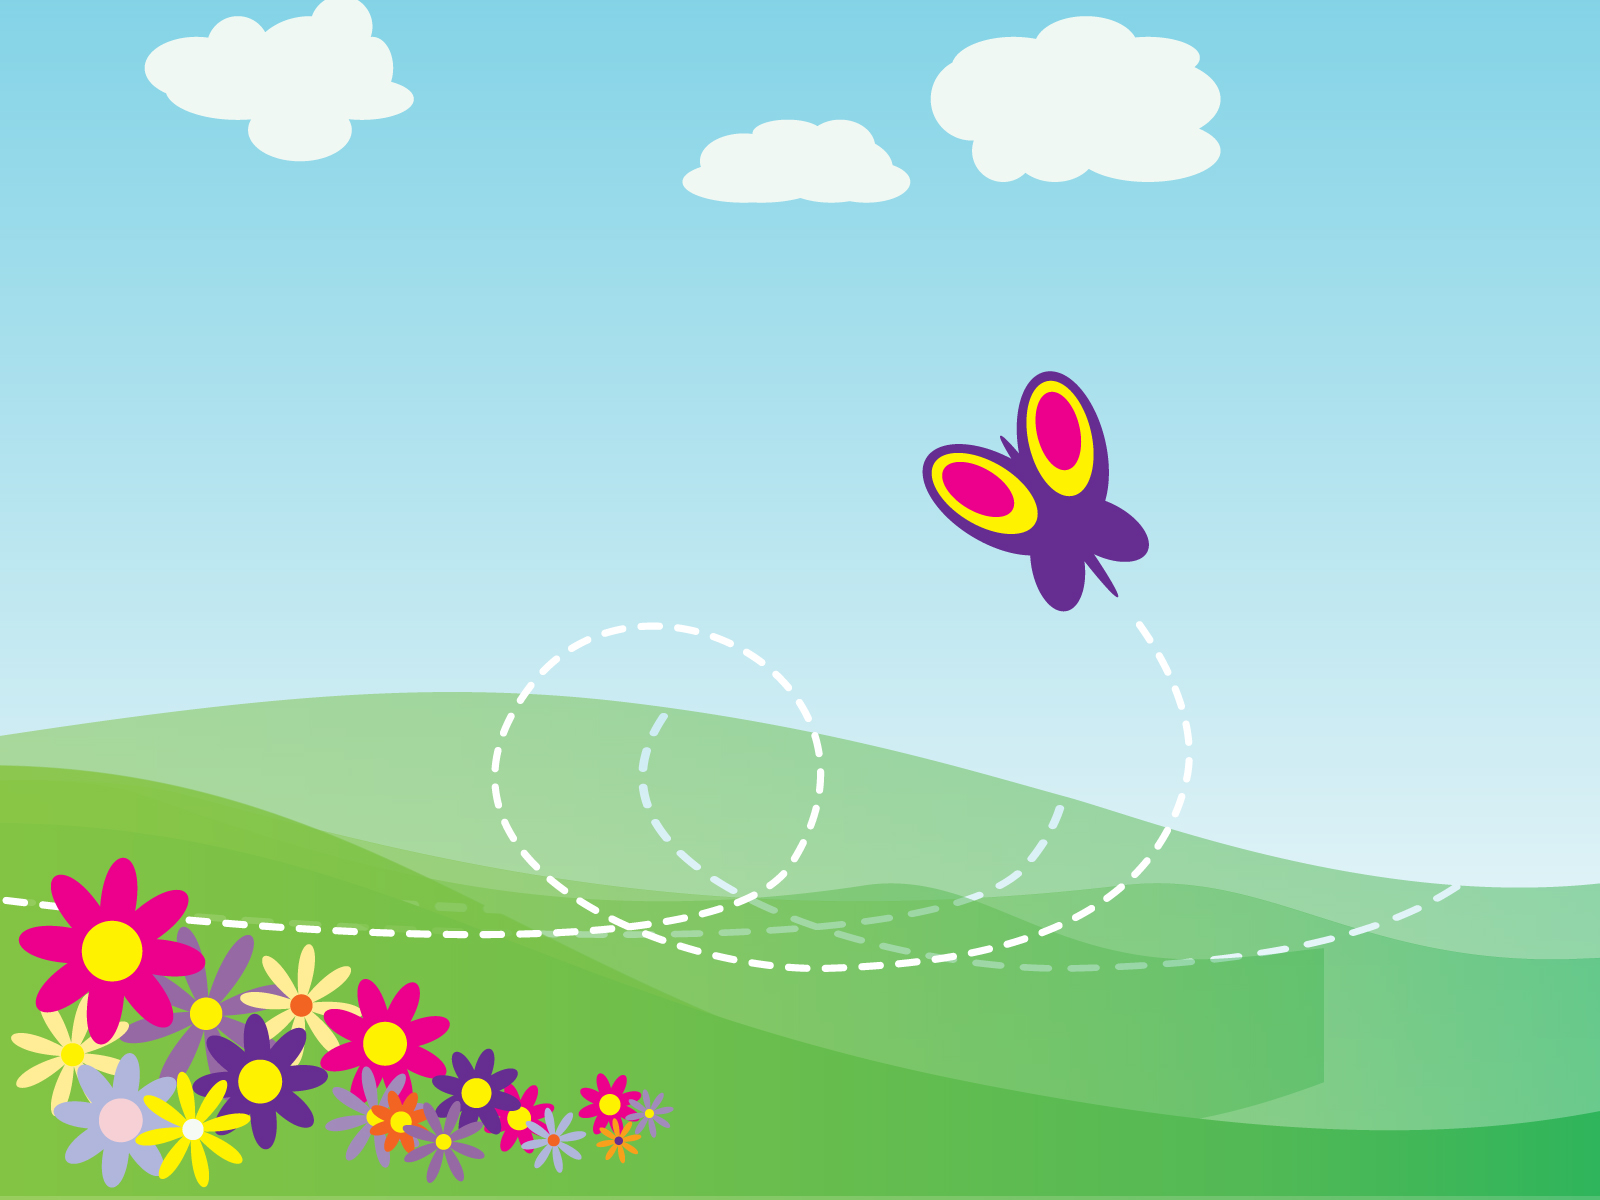 free ppt templates - cartoon butterfly and flowers backgrounds flowers